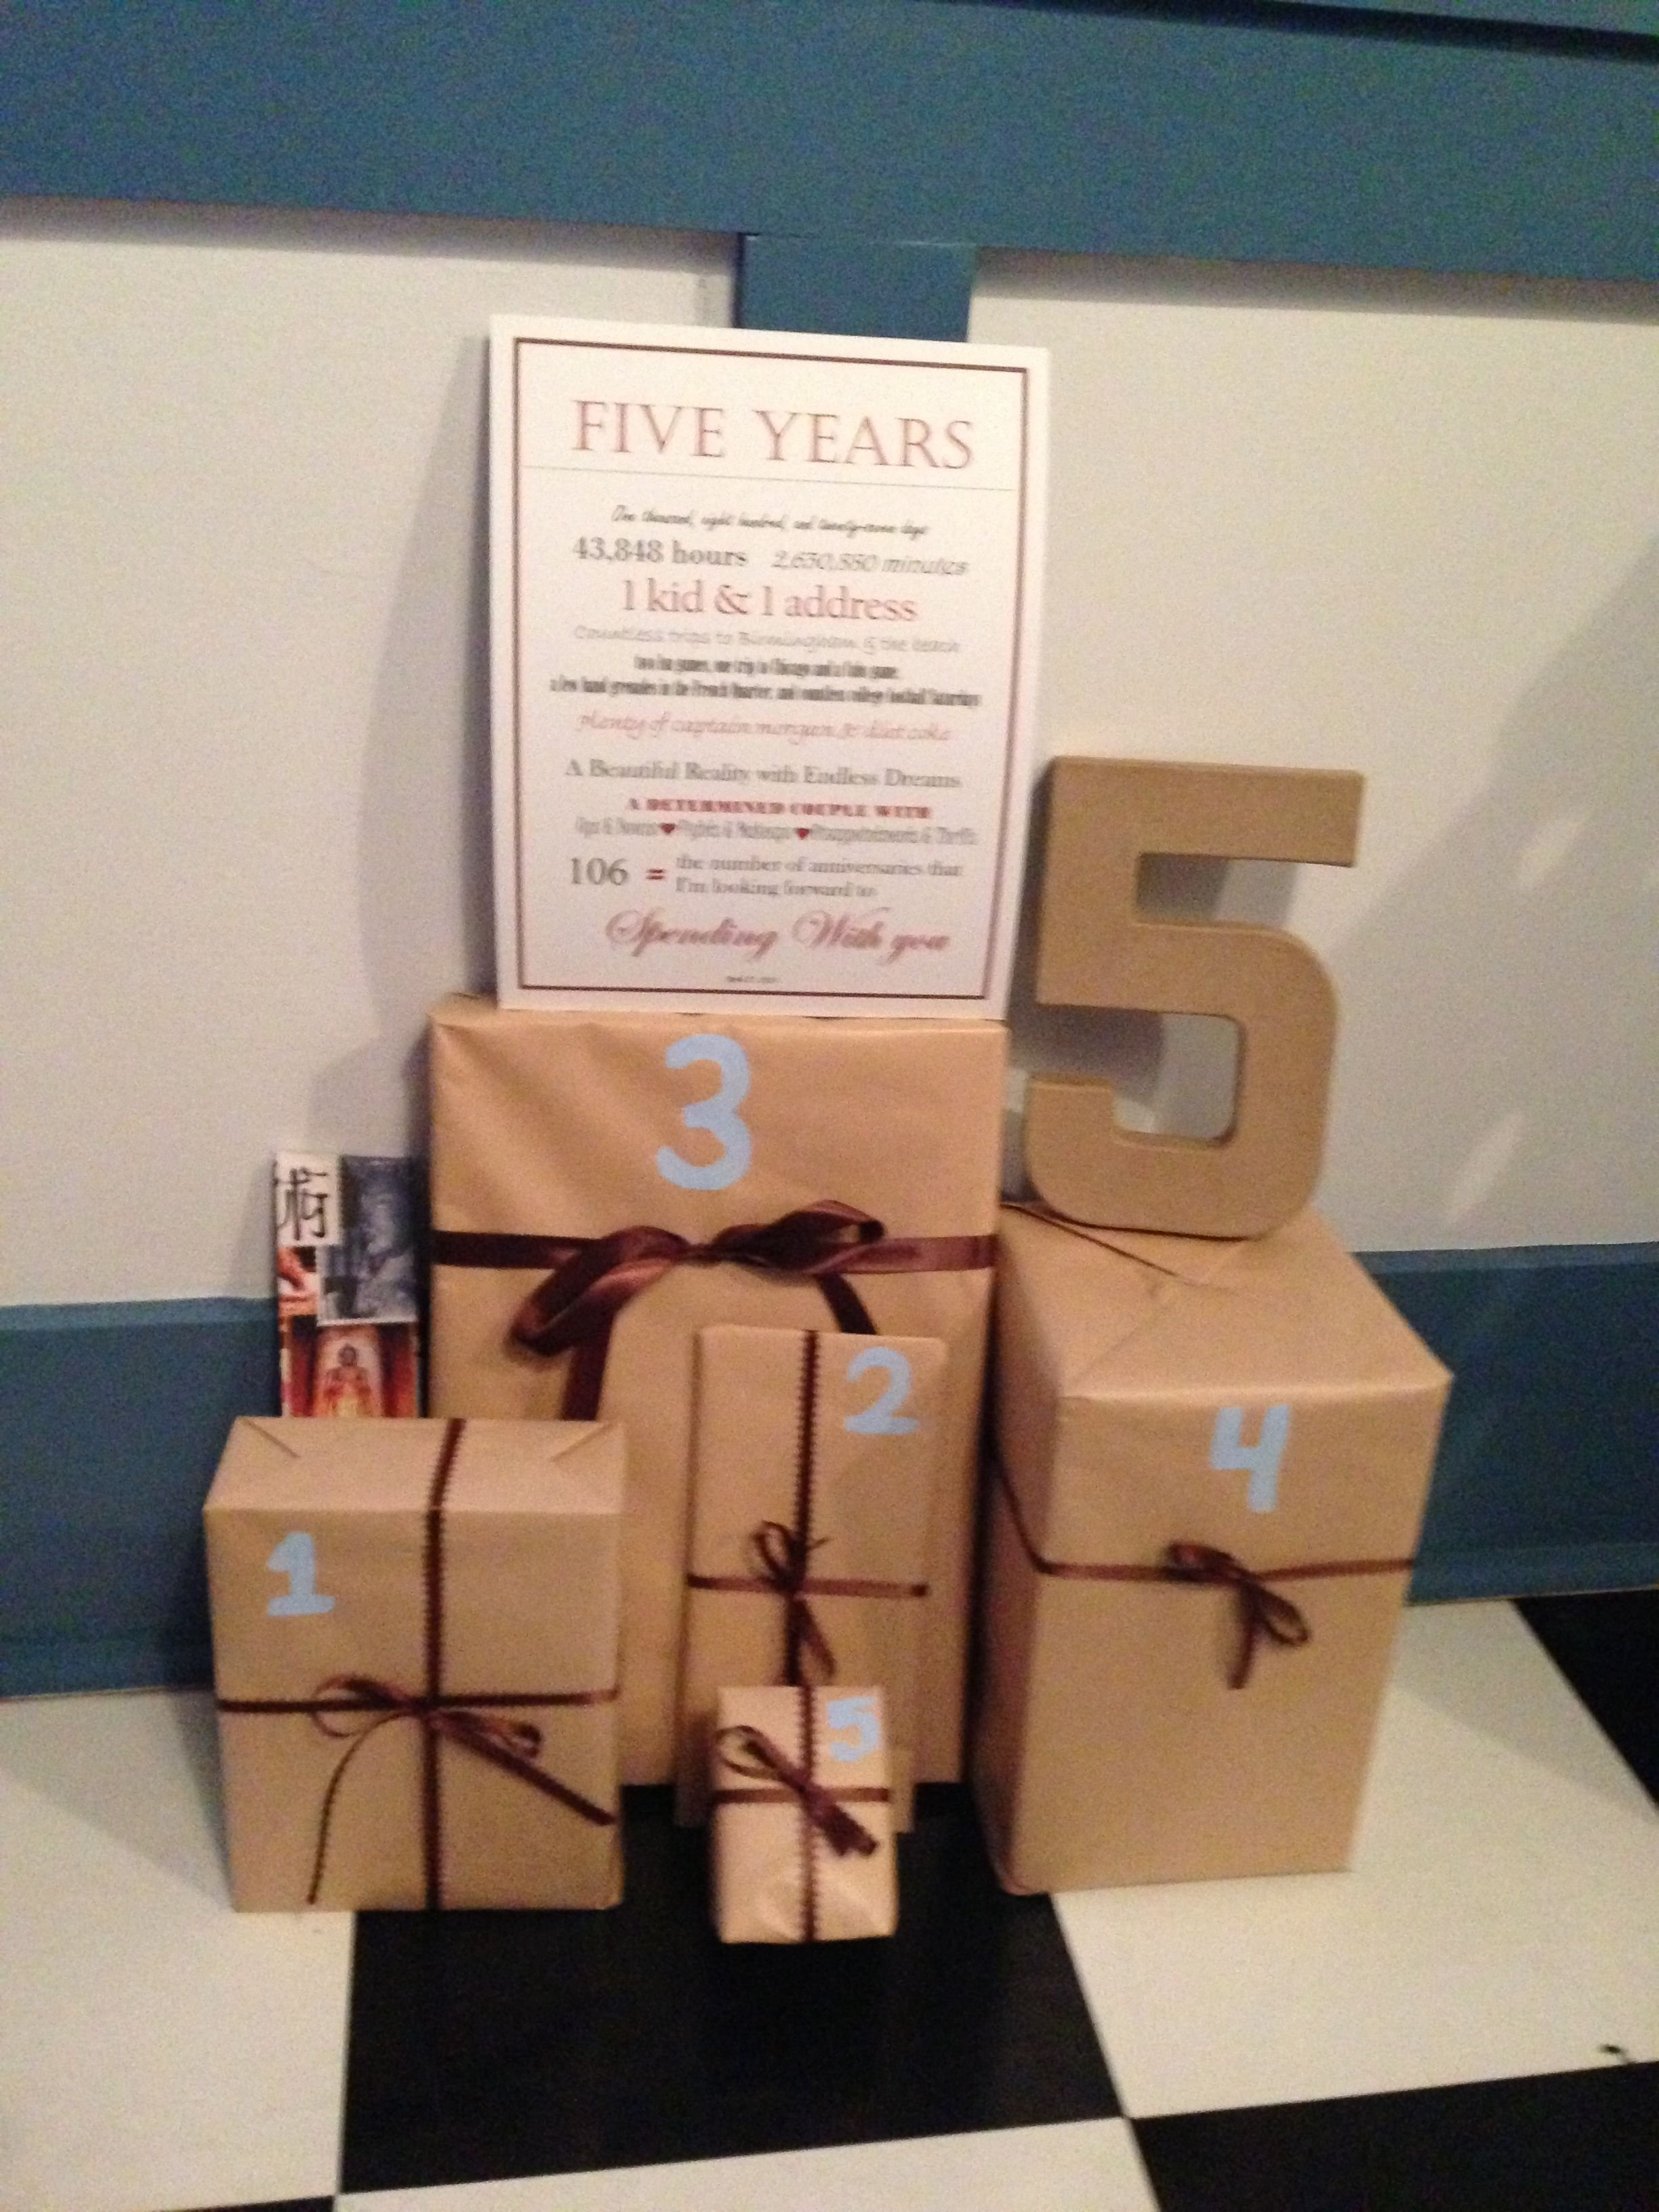 10 Stunning 5 Year Anniversary Ideas For Him 5 year anniversary 1 gift that reminds you of each year of marriage 6 2020